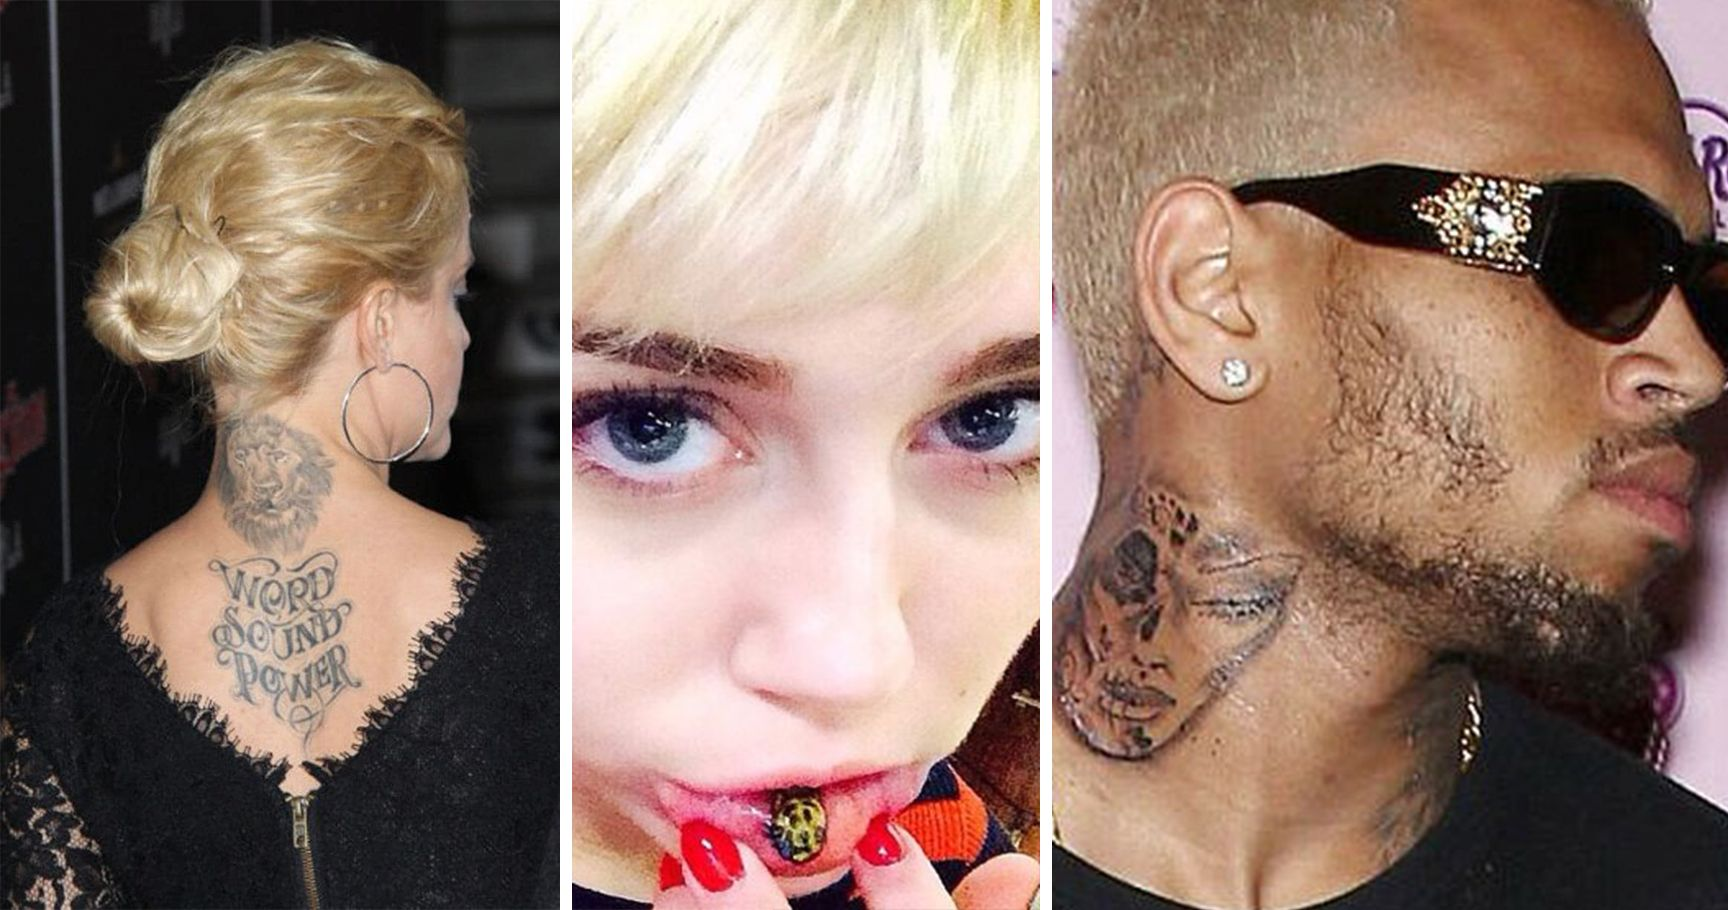 15 Celebrity Tattoos That Are Absolutely Horrendous